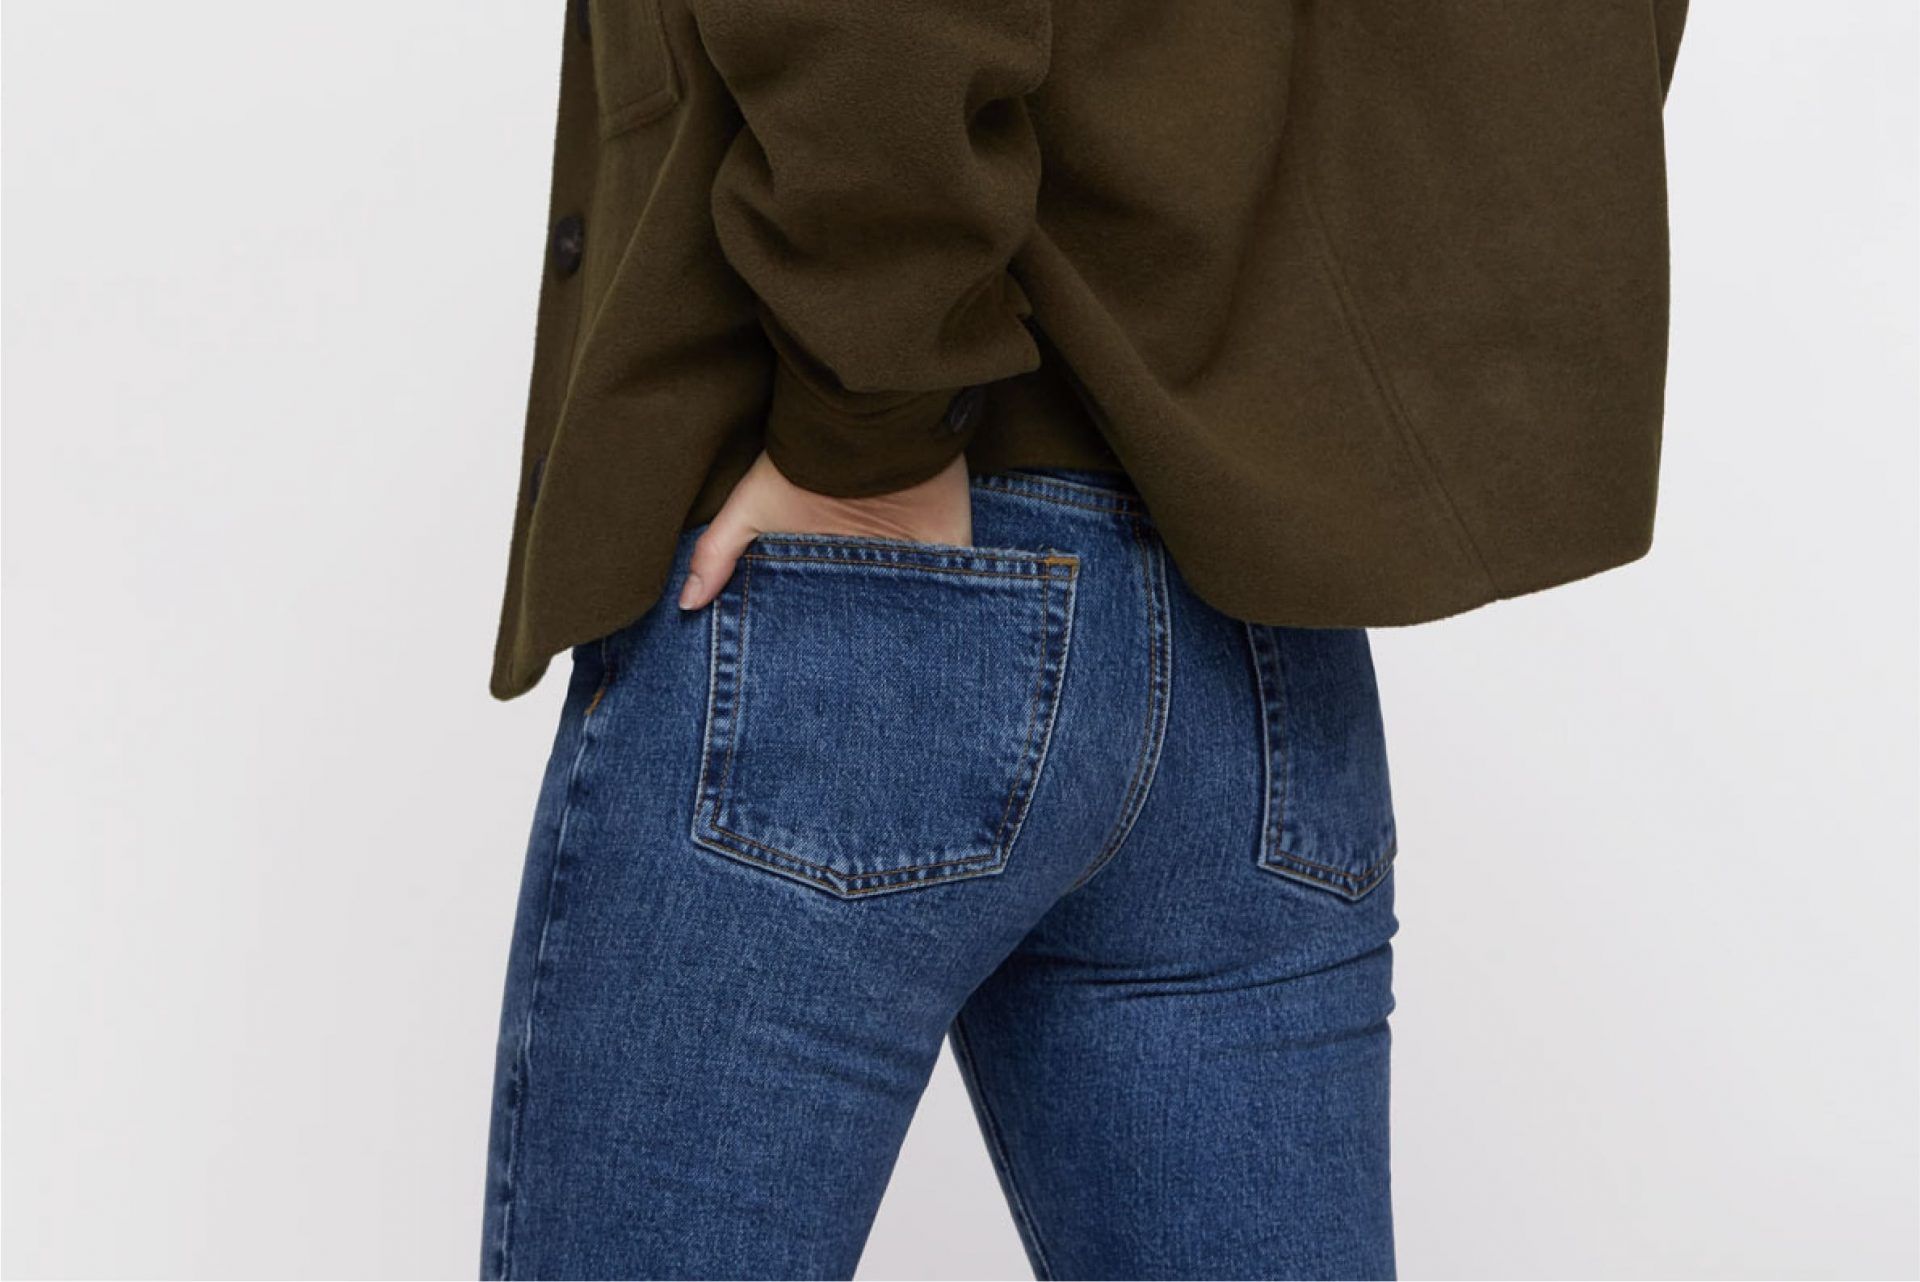 how to find perfect jeans